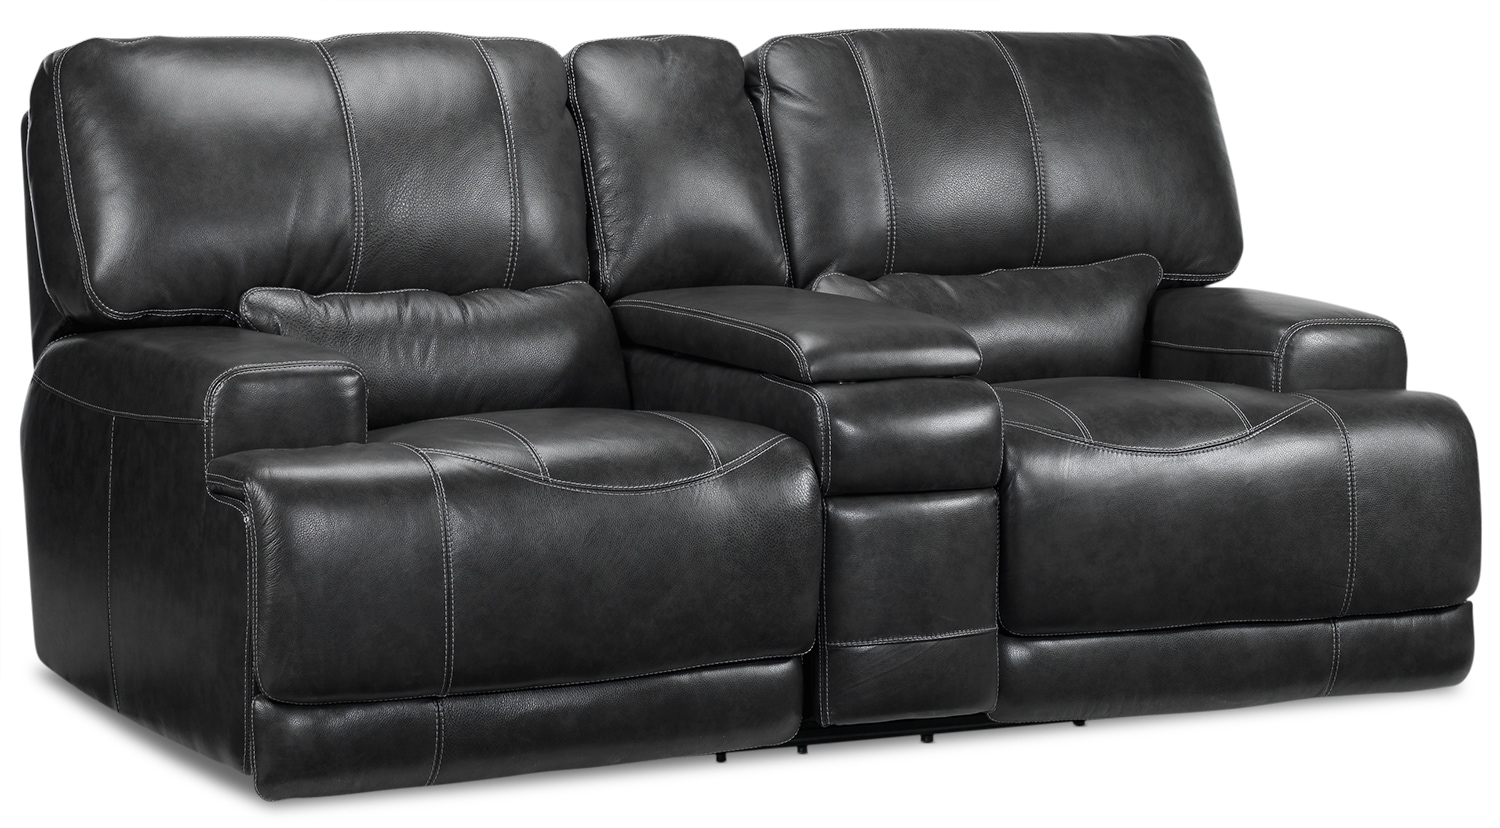 Dearborn Power Reclining Loveseat with Console - Charcoal